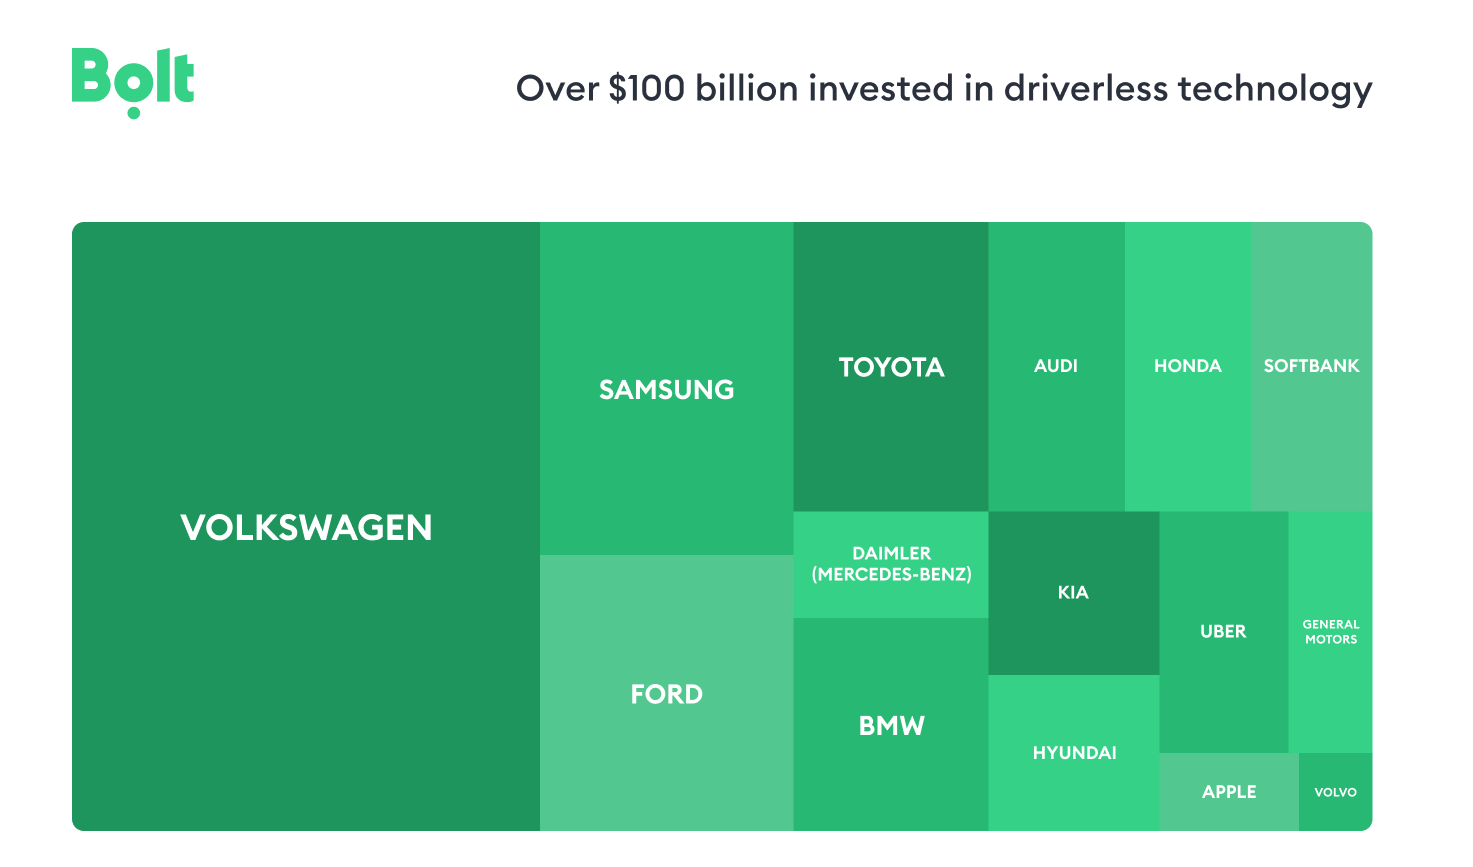 Bolt_investments in driverless tech